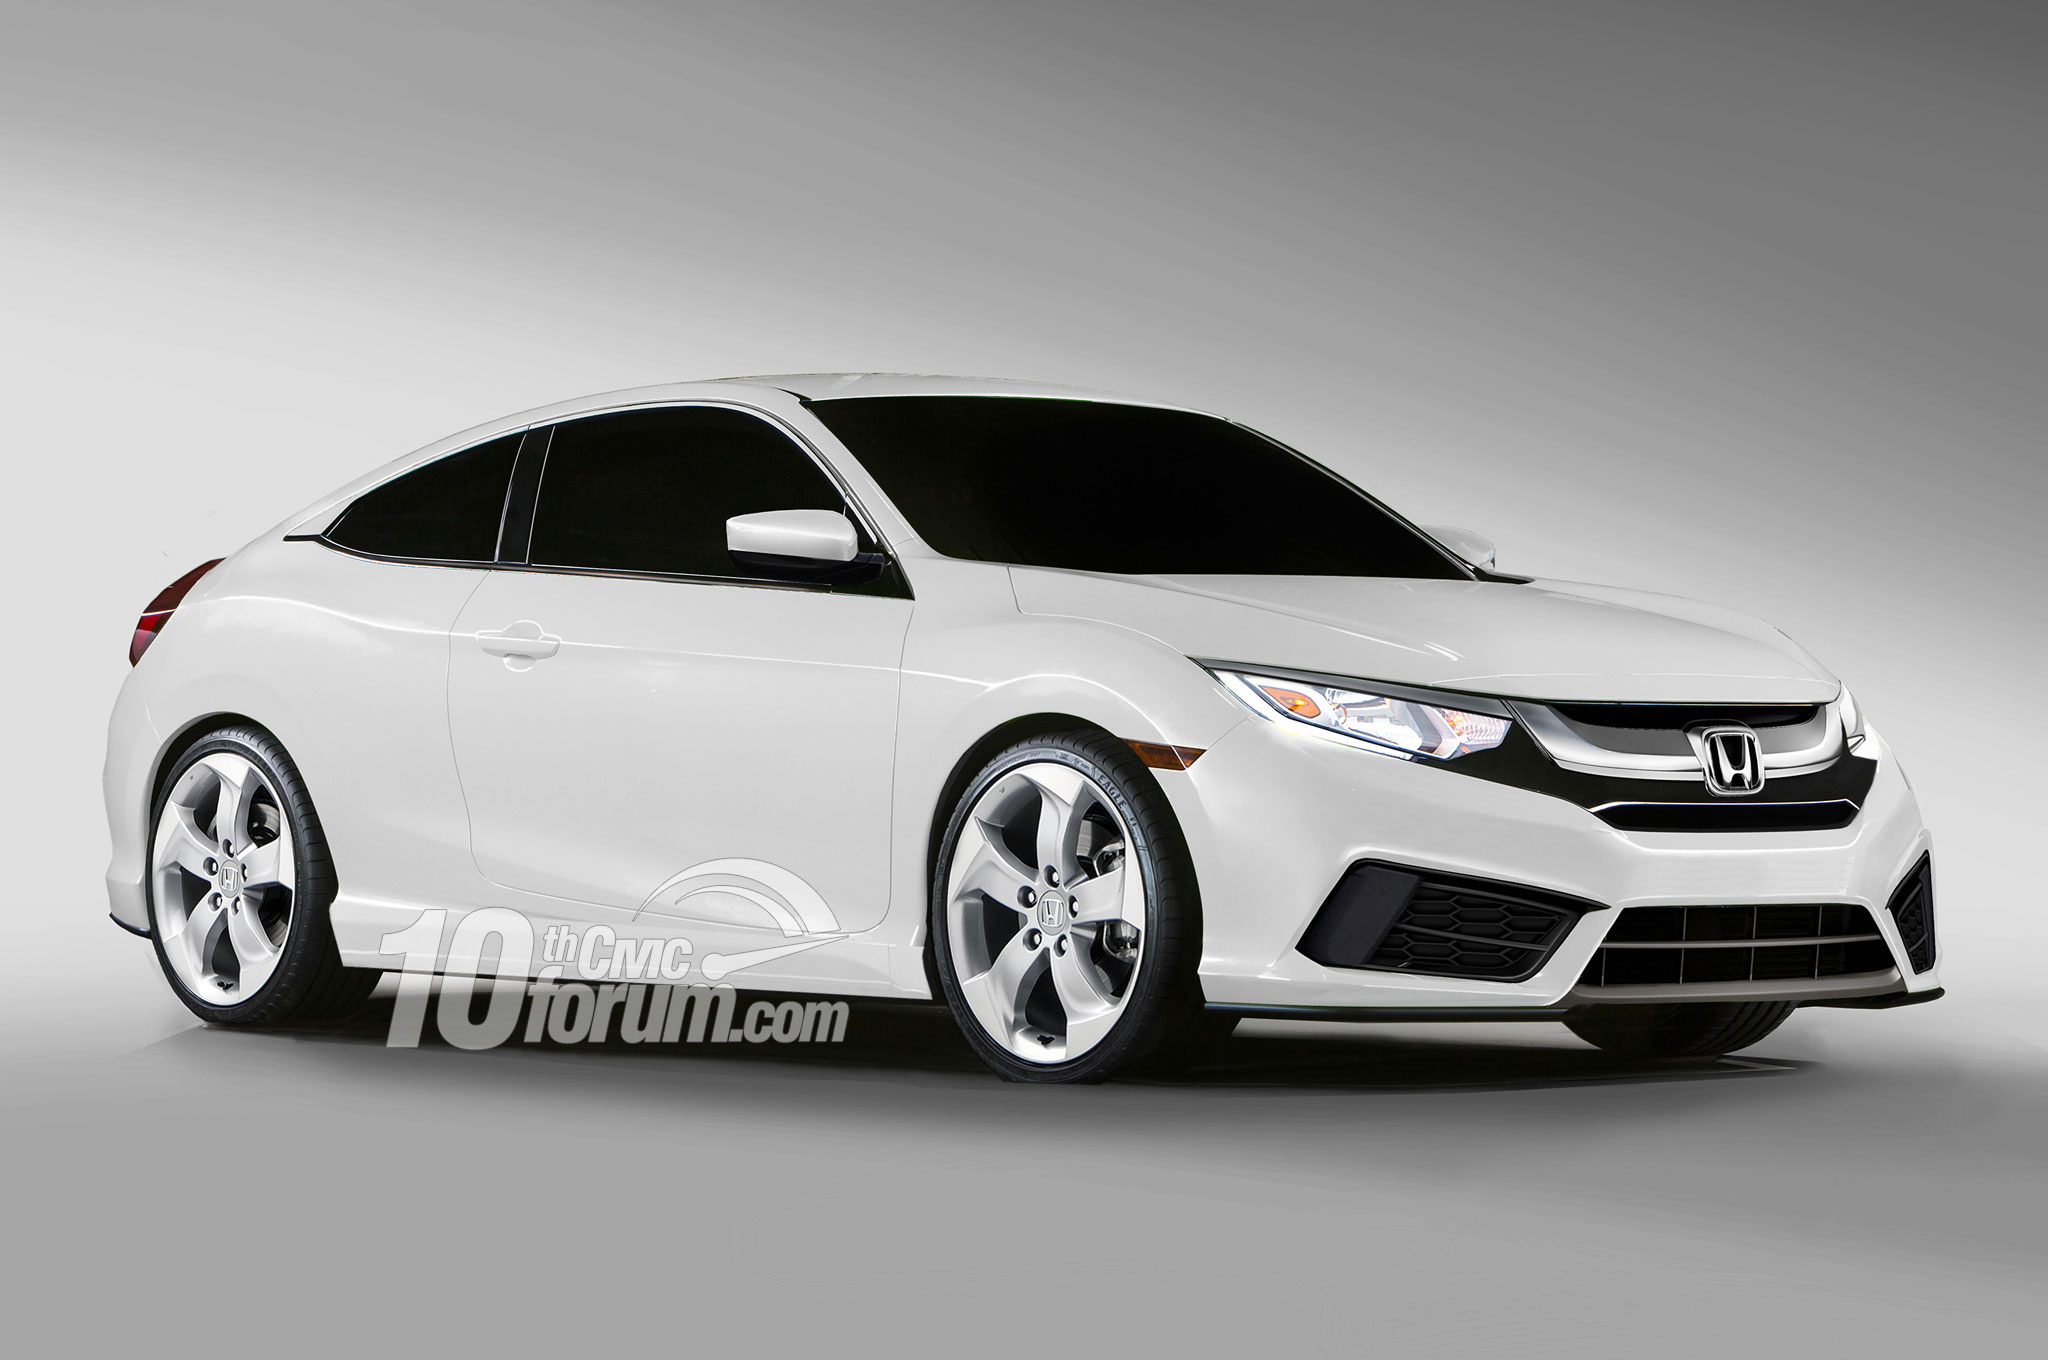 2016 honda civic coupe hatchback and sedan rendered. Black Bedroom Furniture Sets. Home Design Ideas